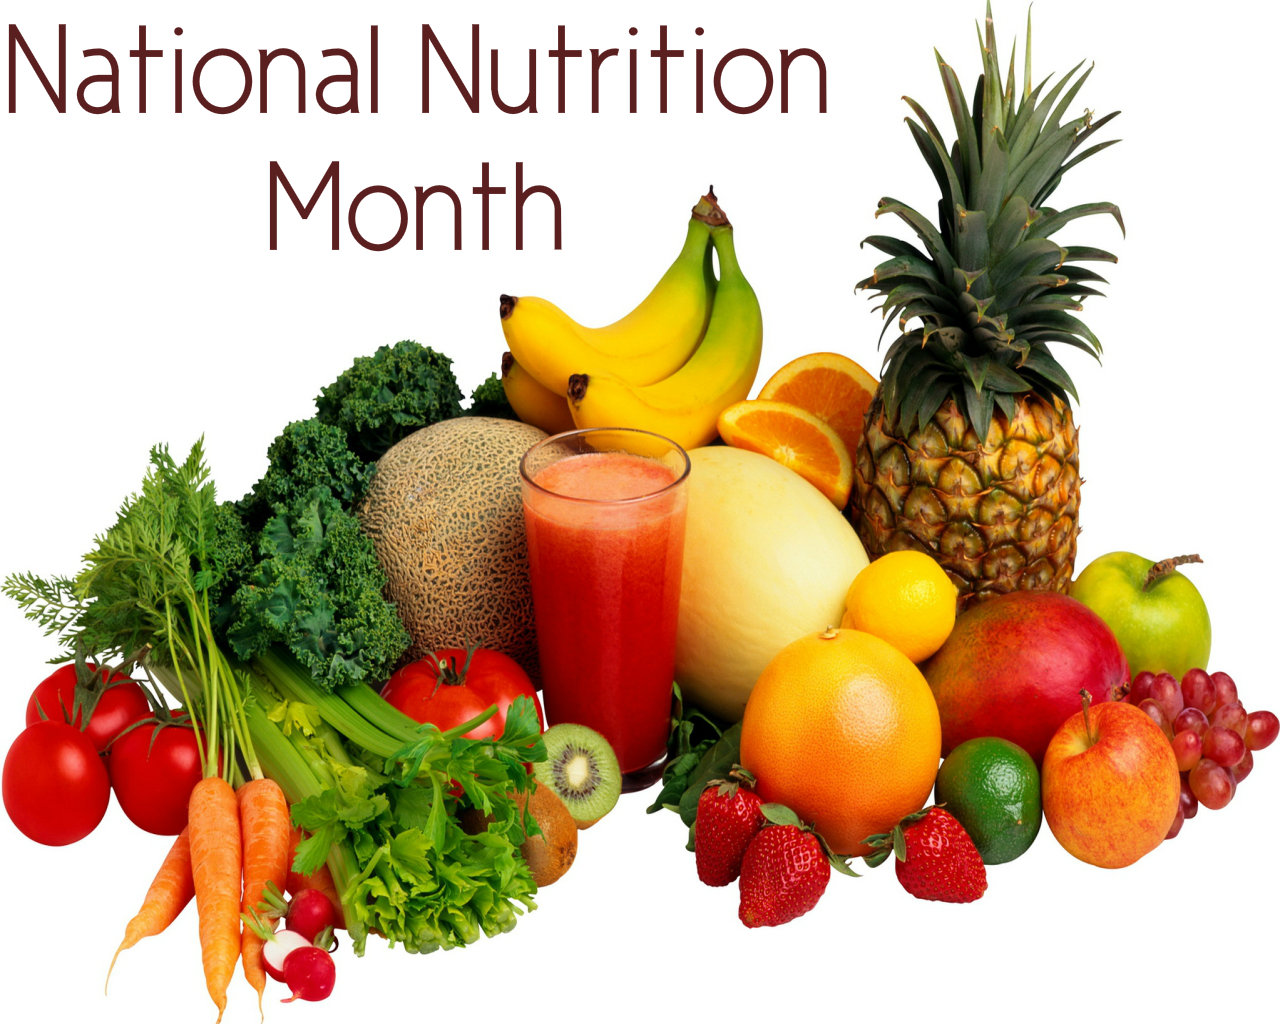 National Nutrition Month being celebrated across country